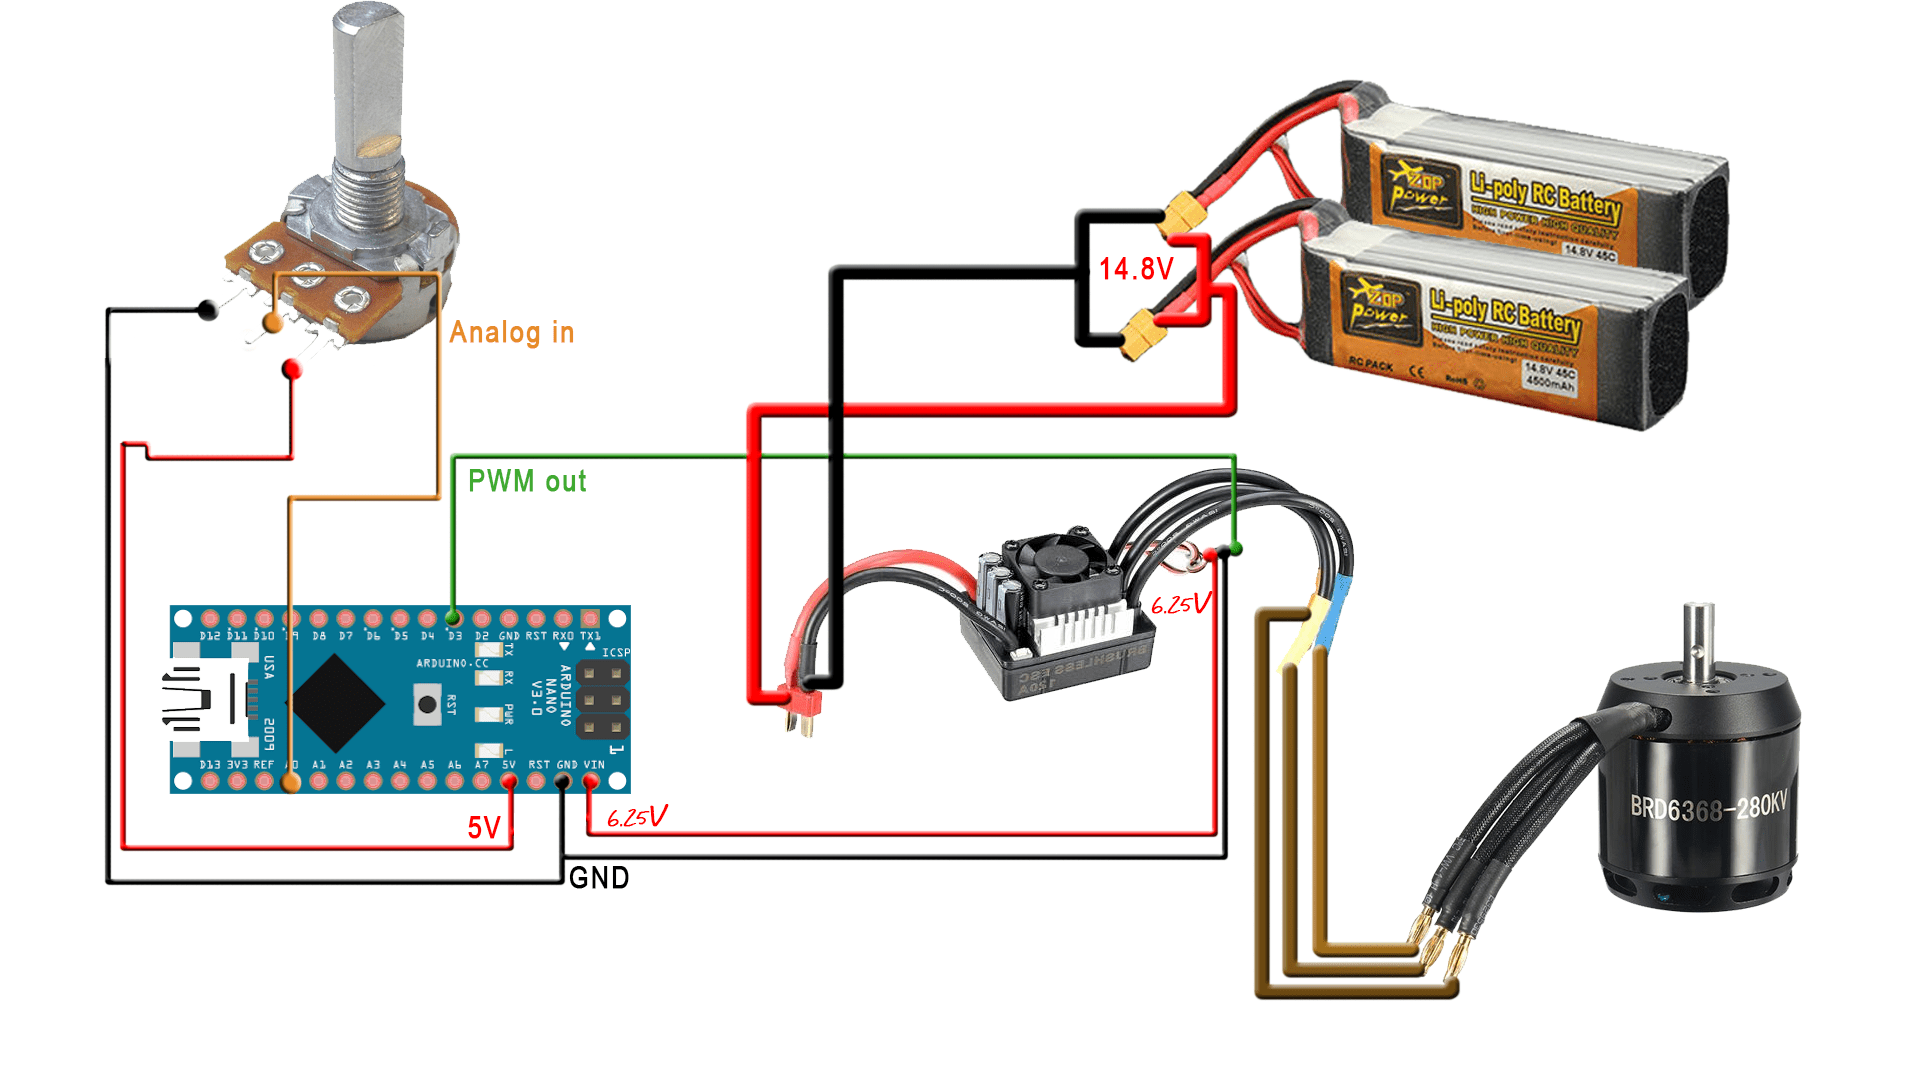 hight resolution of homemade electric scooter brushless arduino diy volvo truck d13 fuel system d13 engine diagram